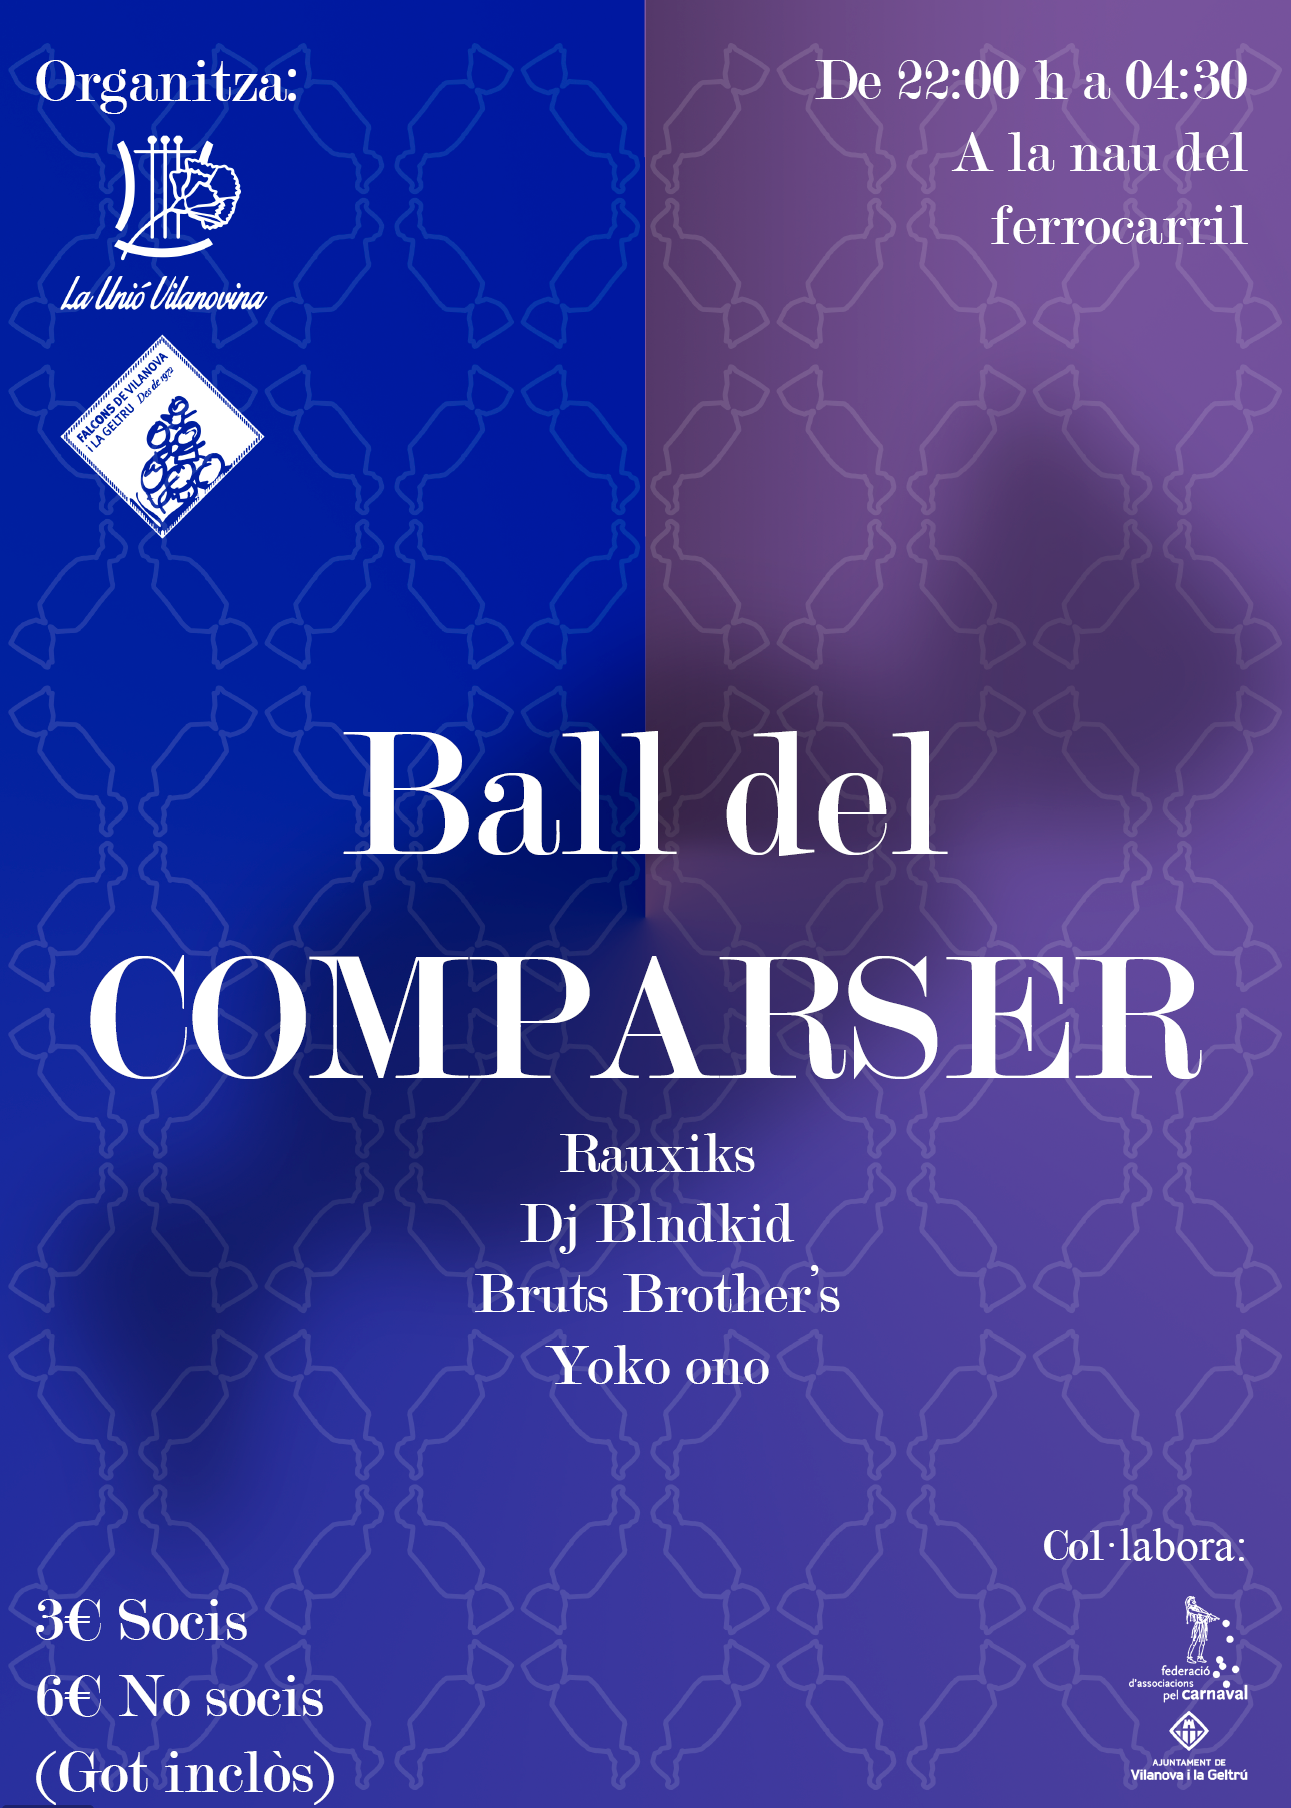 Ball comparser 2018